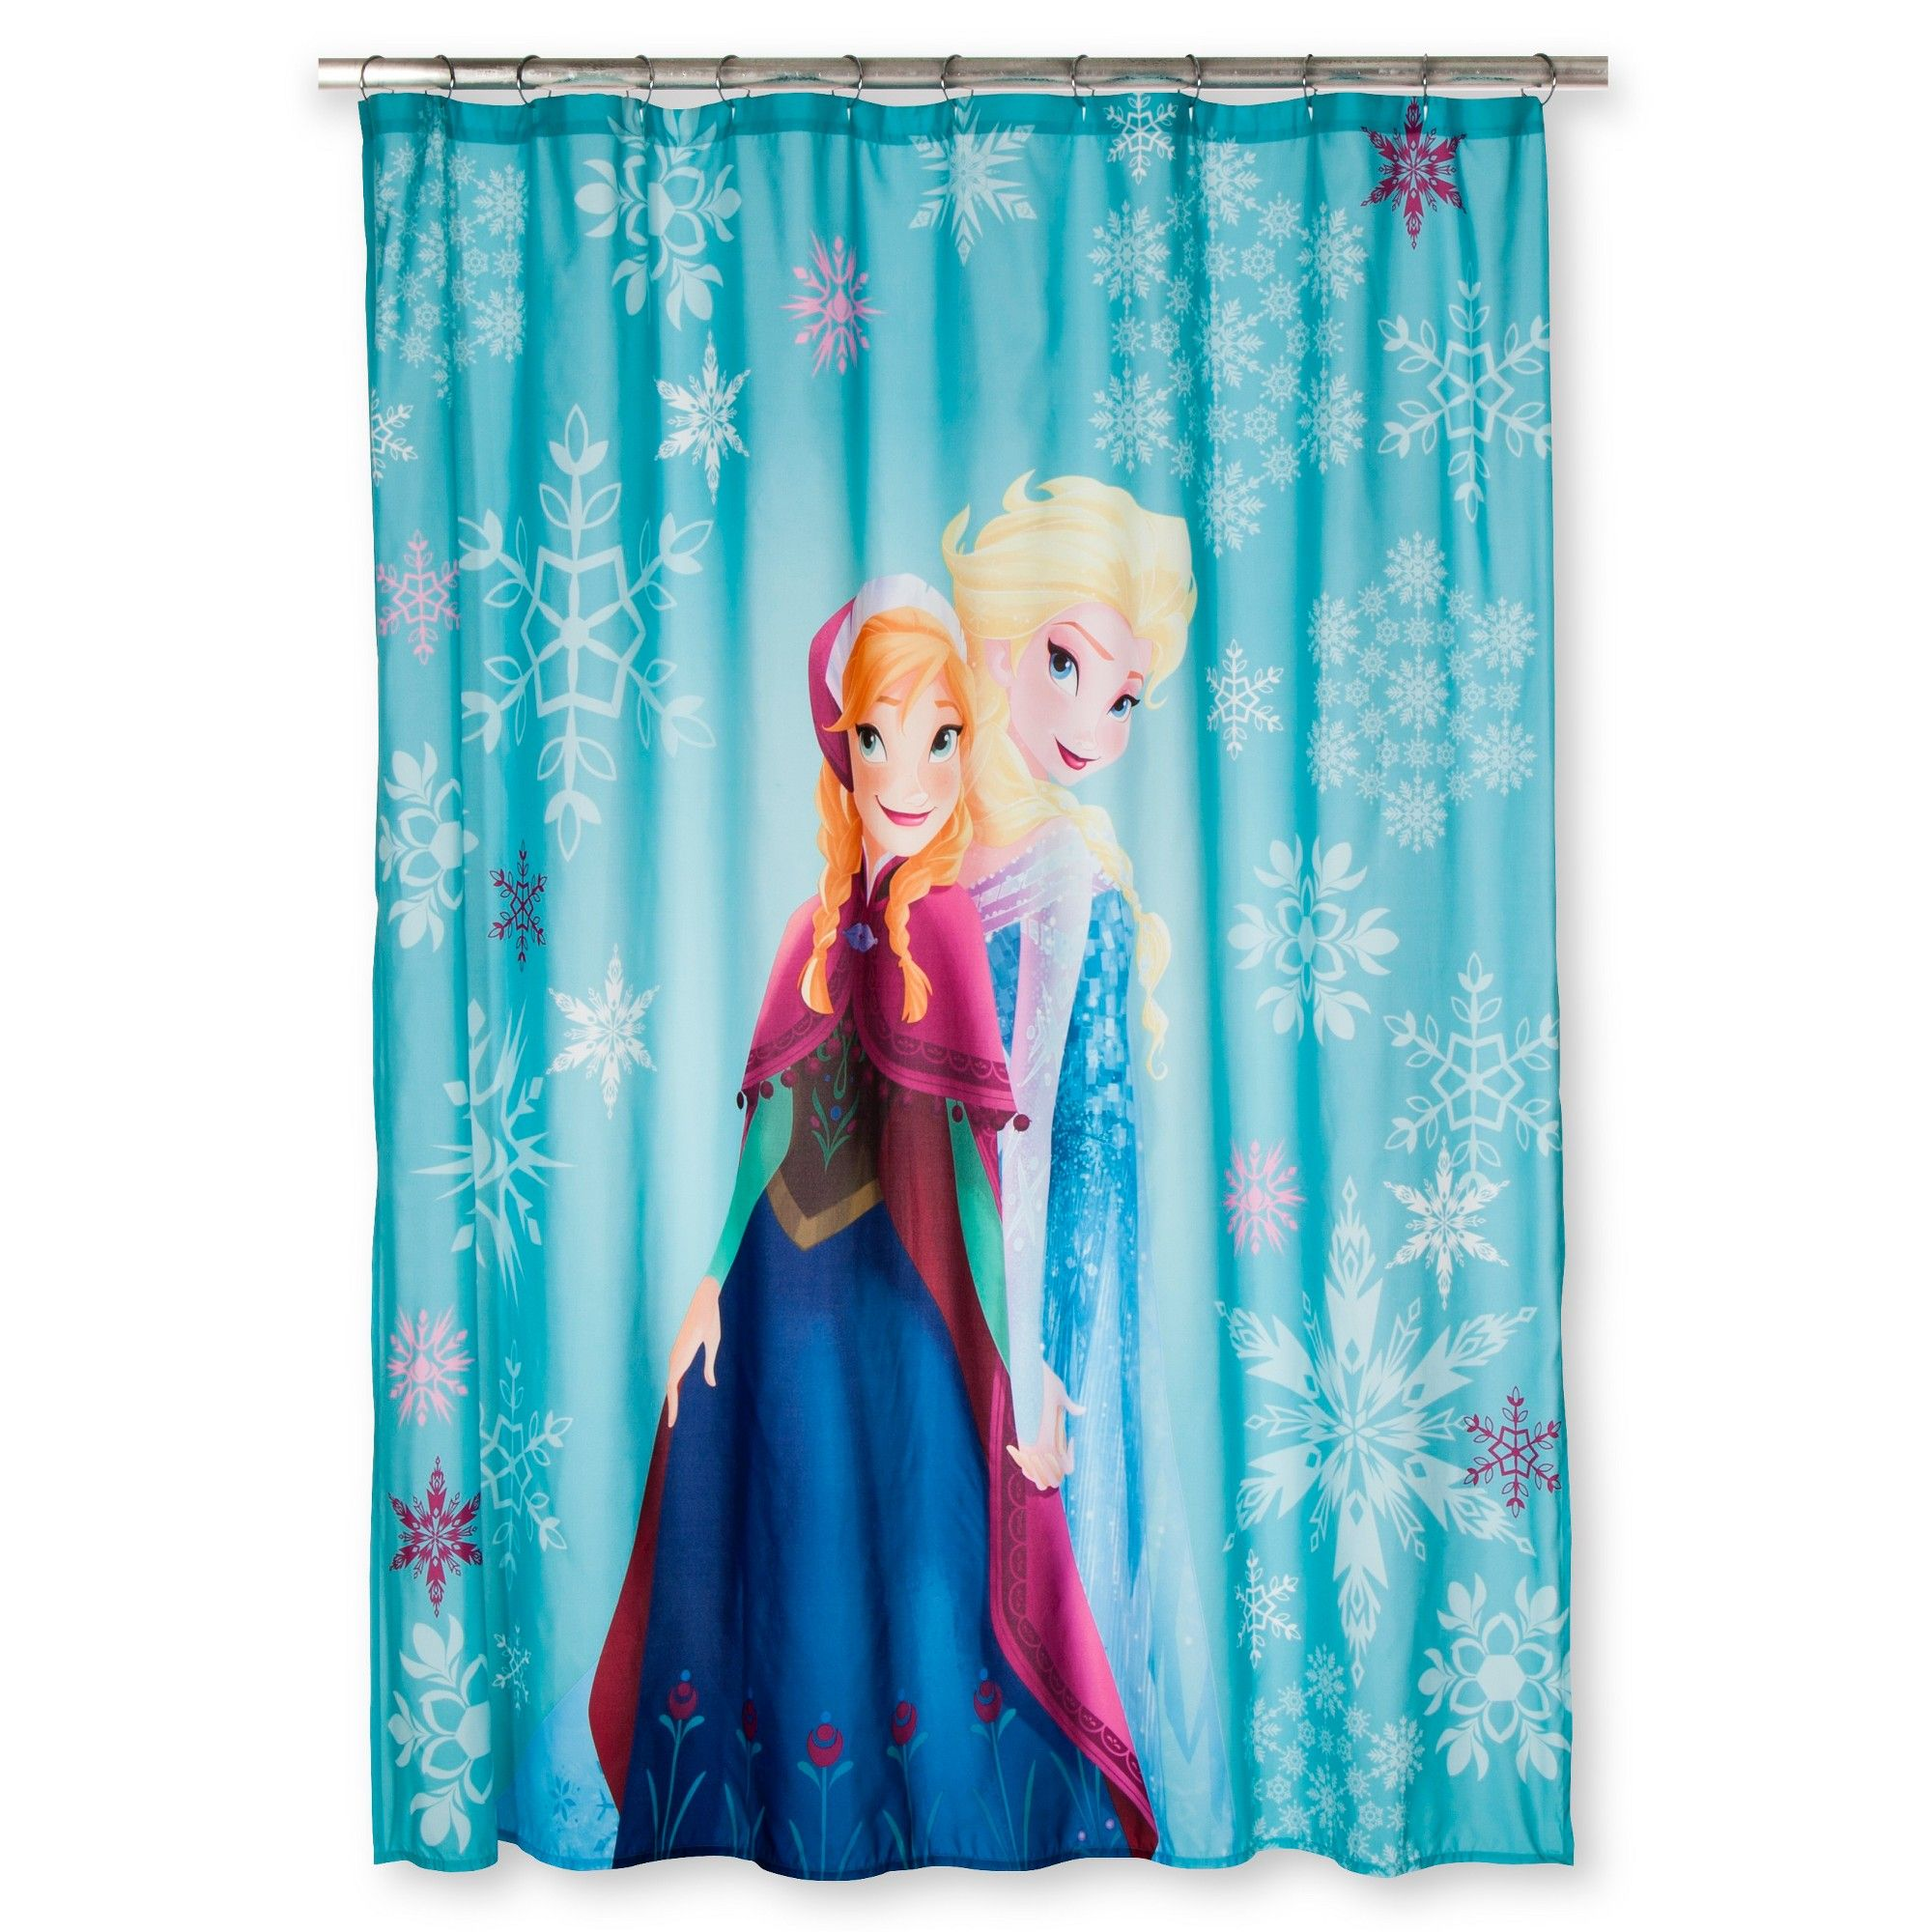 Frozen Bathroom Disney Frozen Anna Elsa Shower Curtain Blue Products Anna